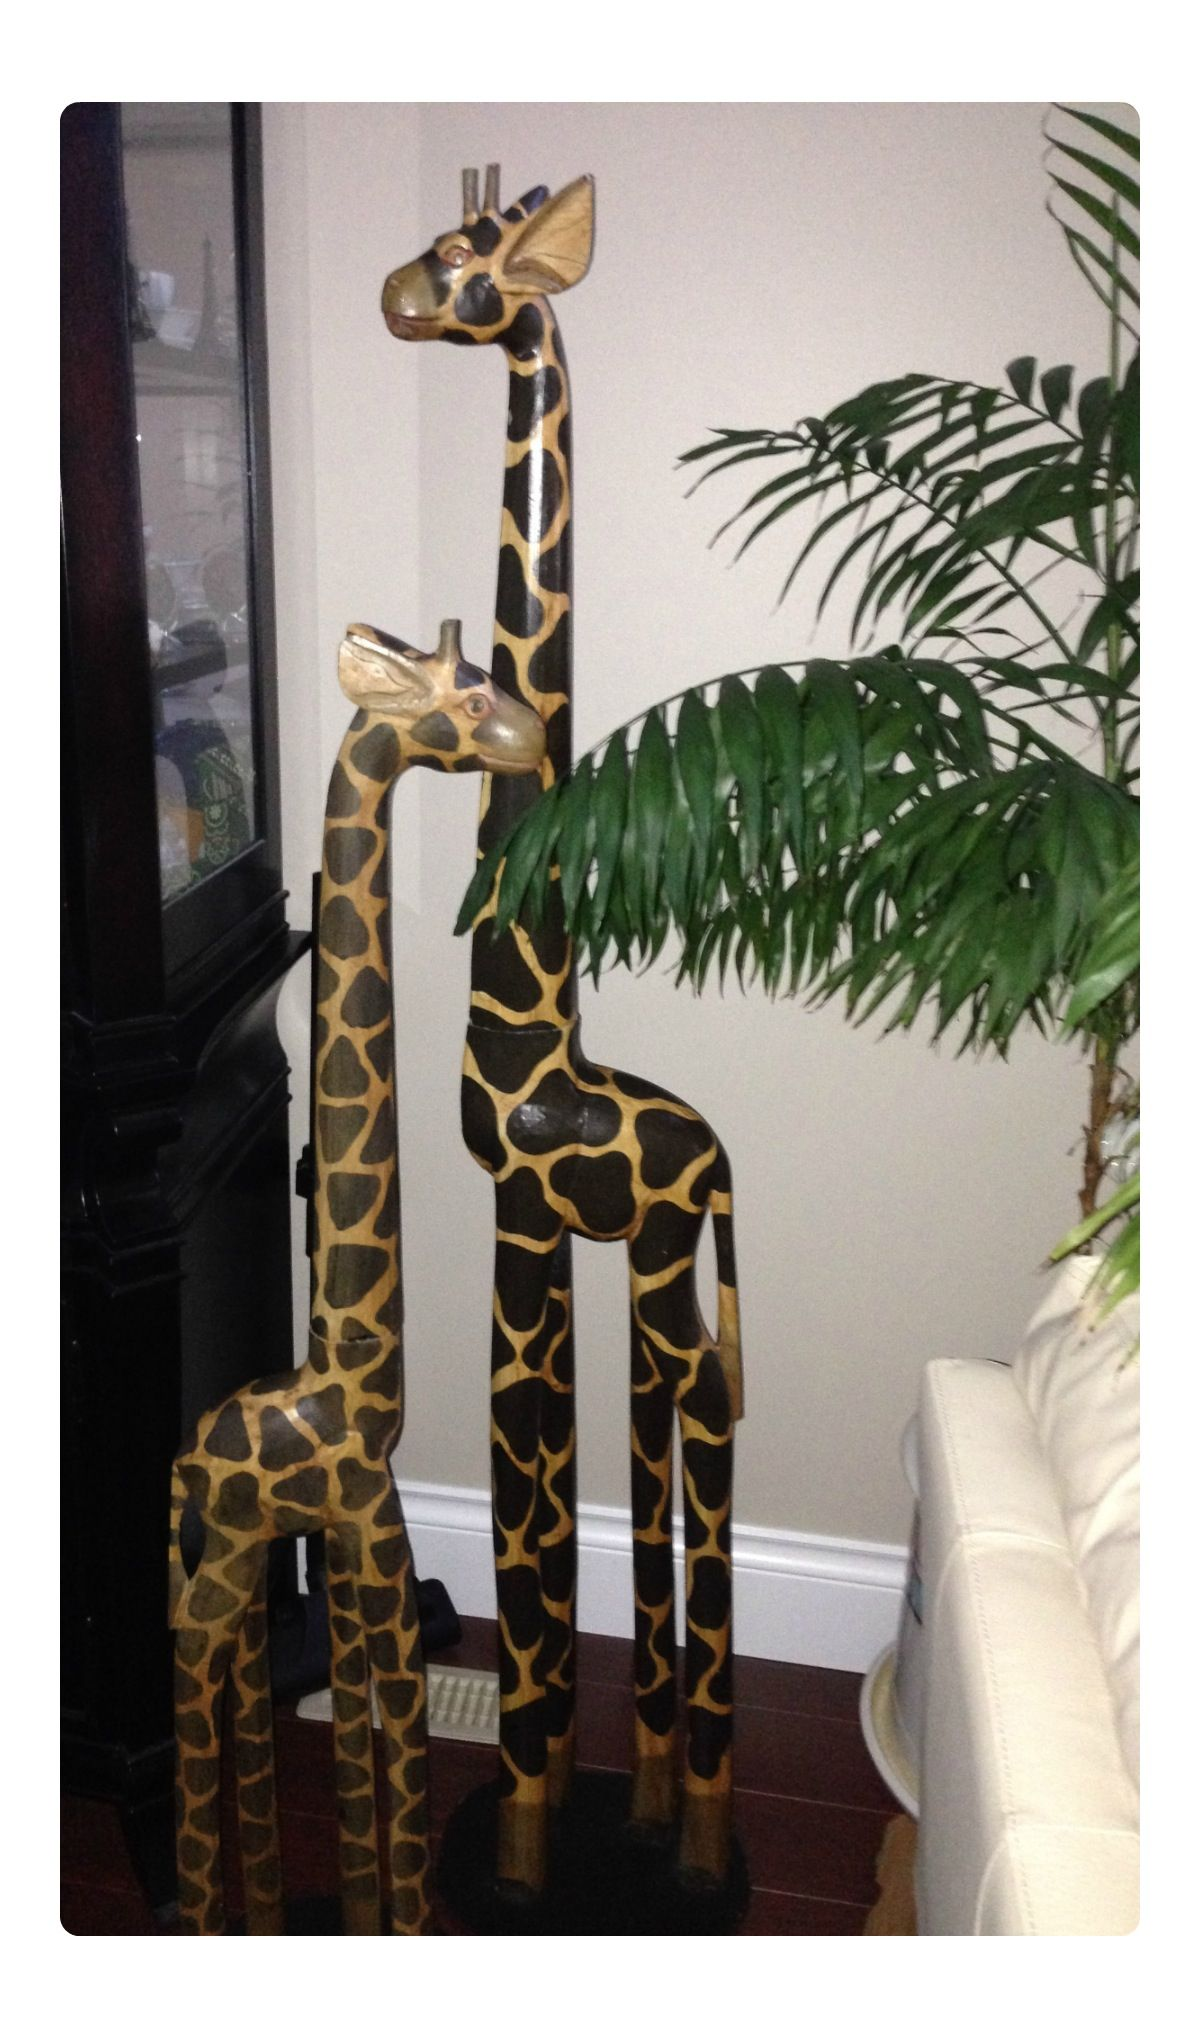 These Are Giraffe Decorations I Got For My House